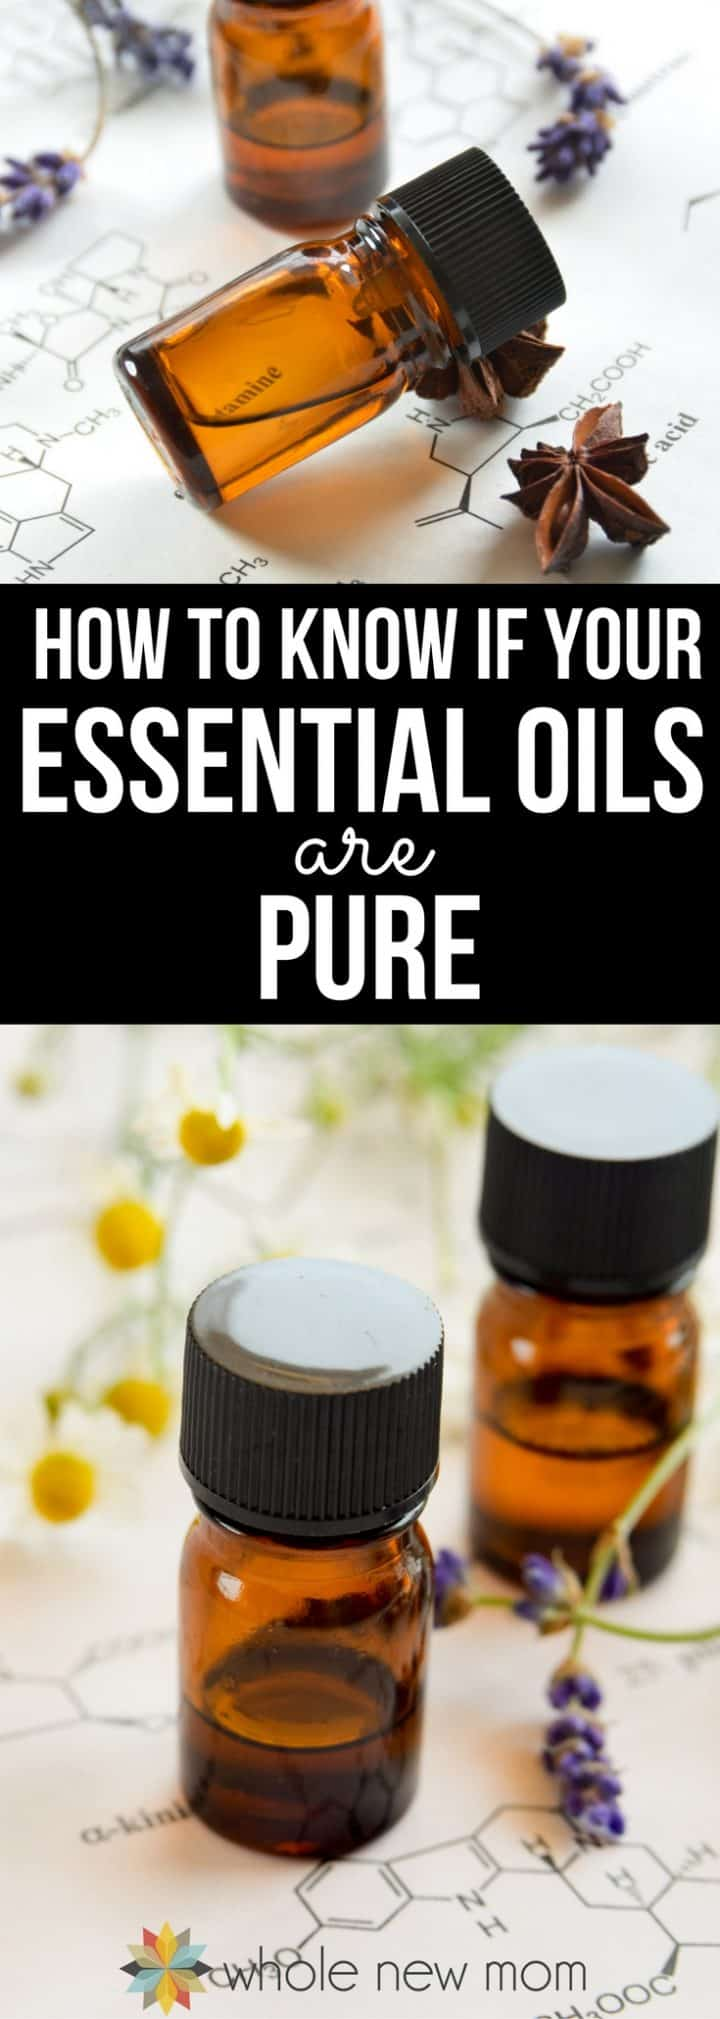 Pinterest collage for How To Know If Your Essential Oils Are Pure post